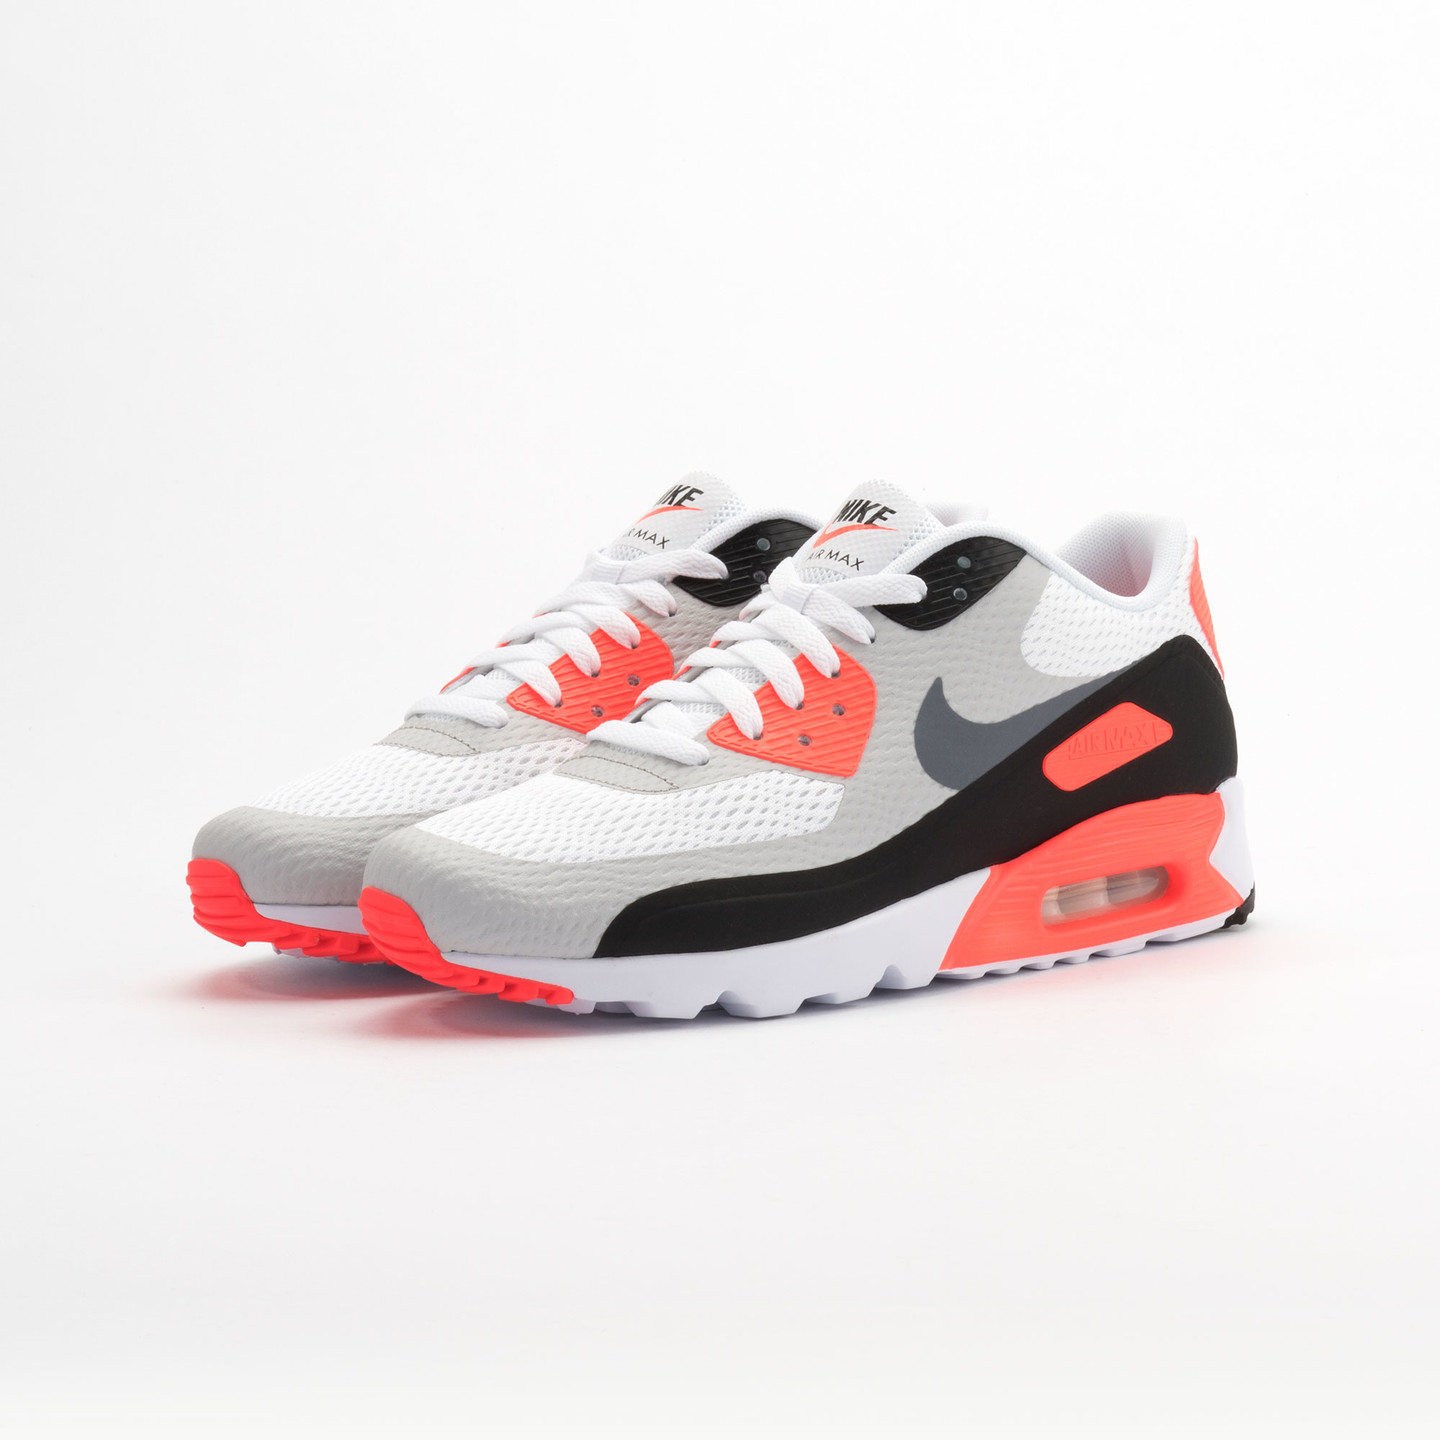 Nike Air Max 90 OG Essential White / Black / Infrared 819474-106-45.5